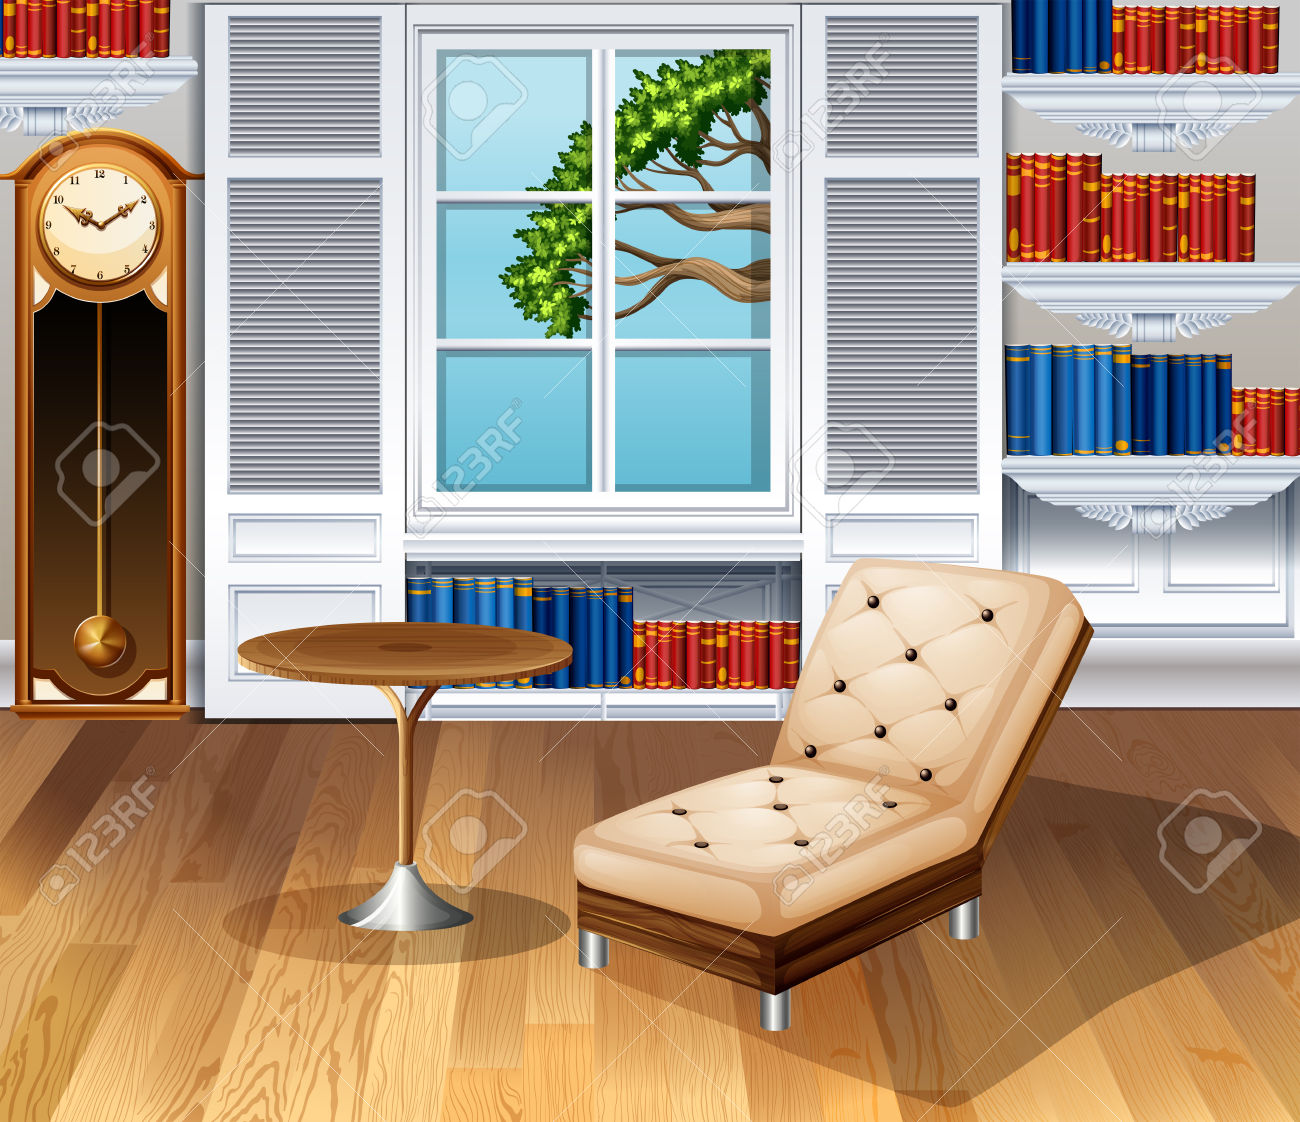 Living Room Fully Furnished Illustration Royalty Free Cliparts.